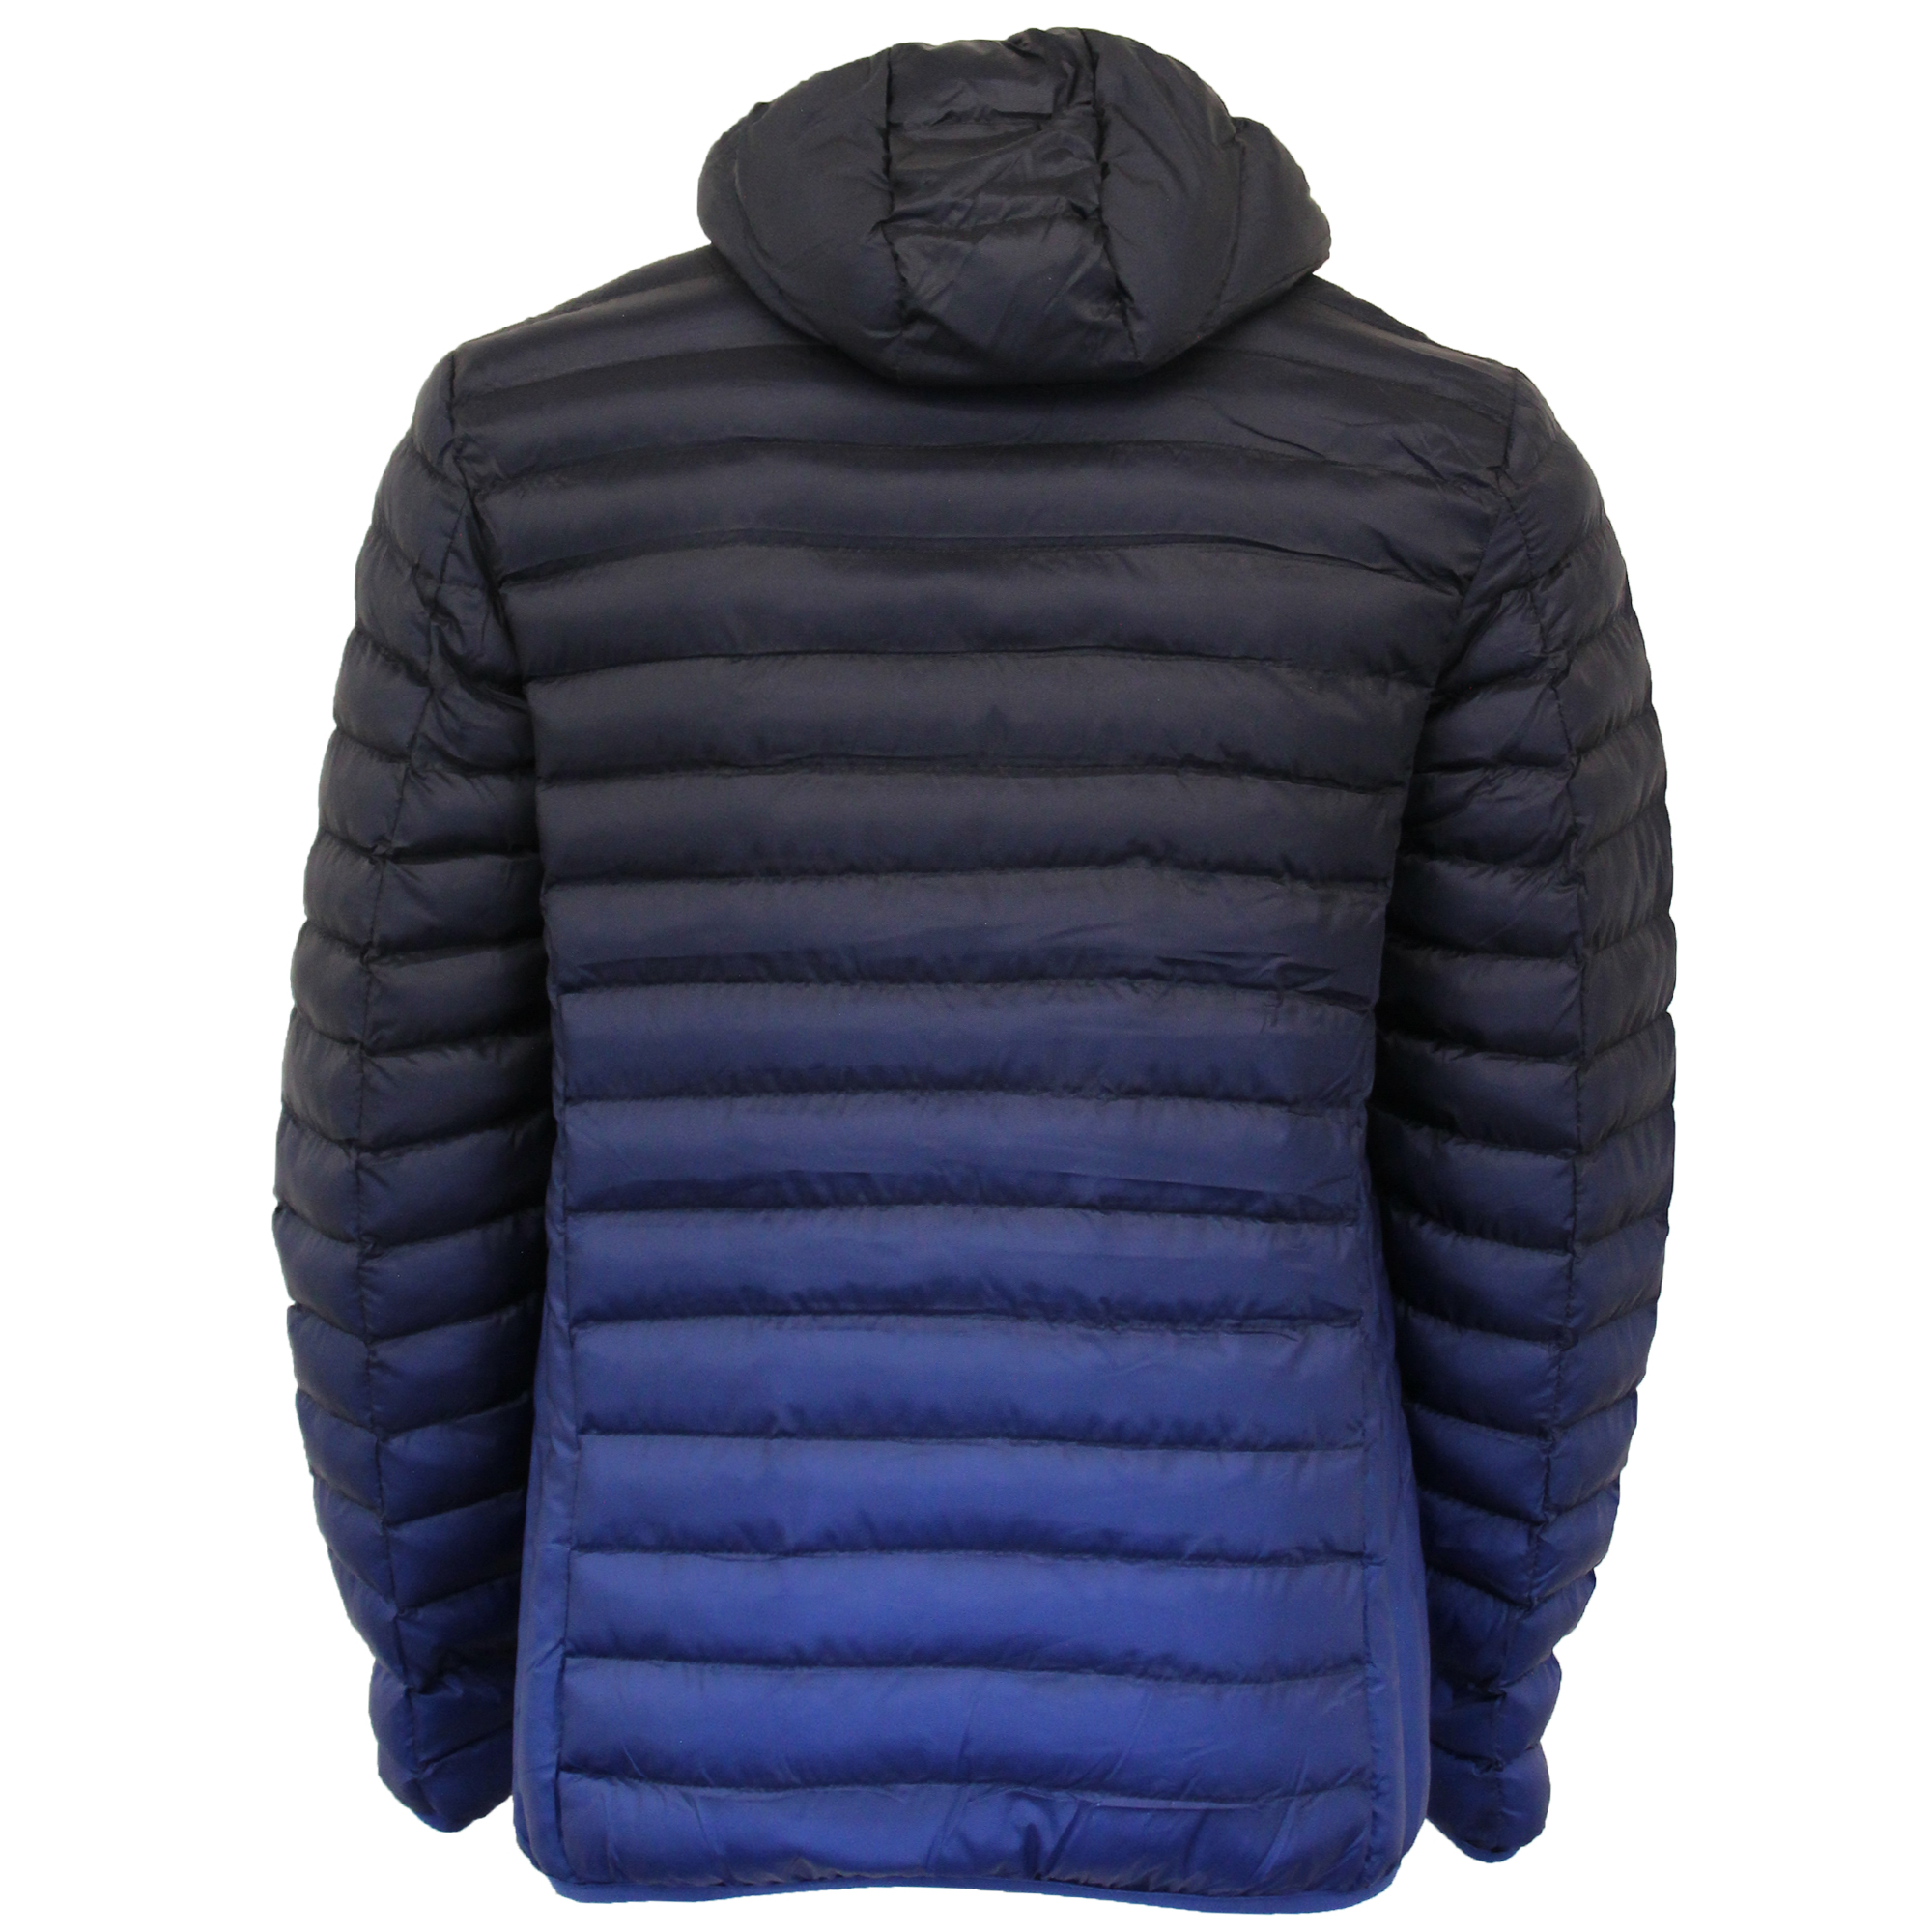 Mens-Jacket-Crosshatch-Hooded-Padded-Quilted-Two-Tone-FADEDOWN-Lined-Winter-New thumbnail 21